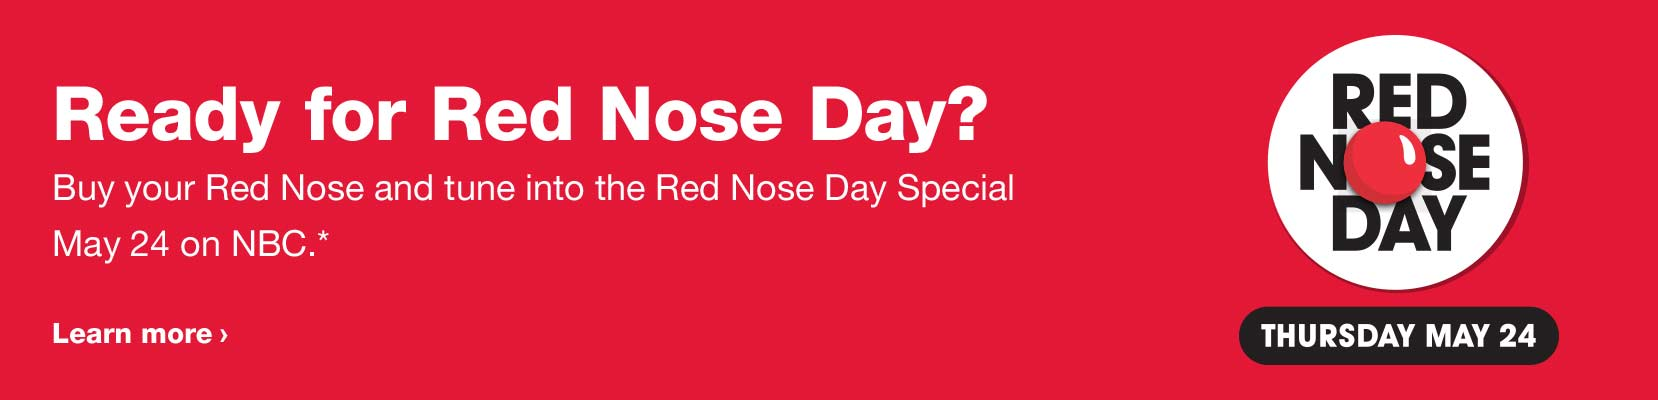 Ready for Red Nose Day? Buy your Red Nose and tune into the Red Nose Day Special May 24 on NBC.* Learn more. Red Nose Day, Thursday, May 24.